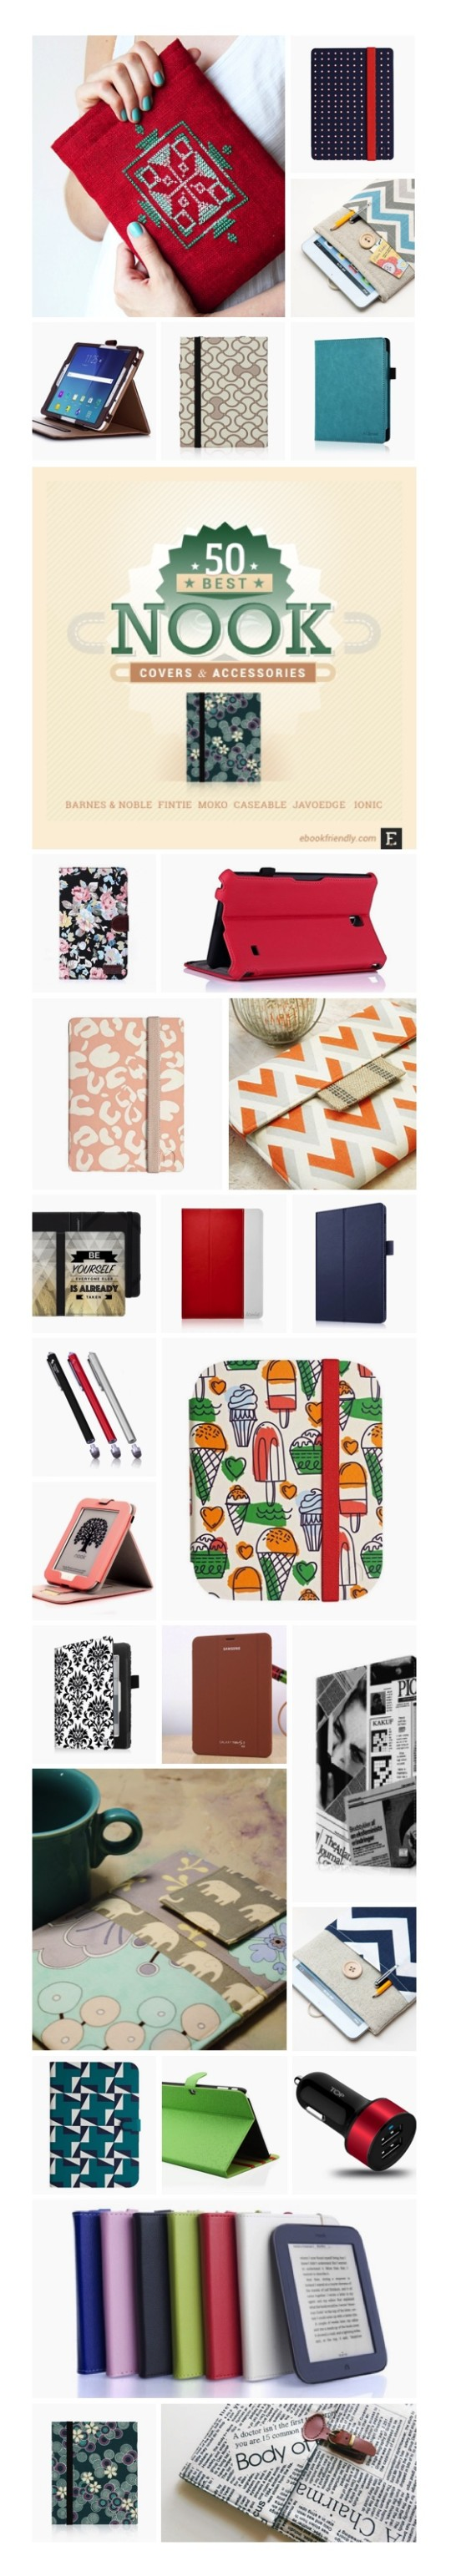 50 most trendy #Nook case covers and accessories #infographic